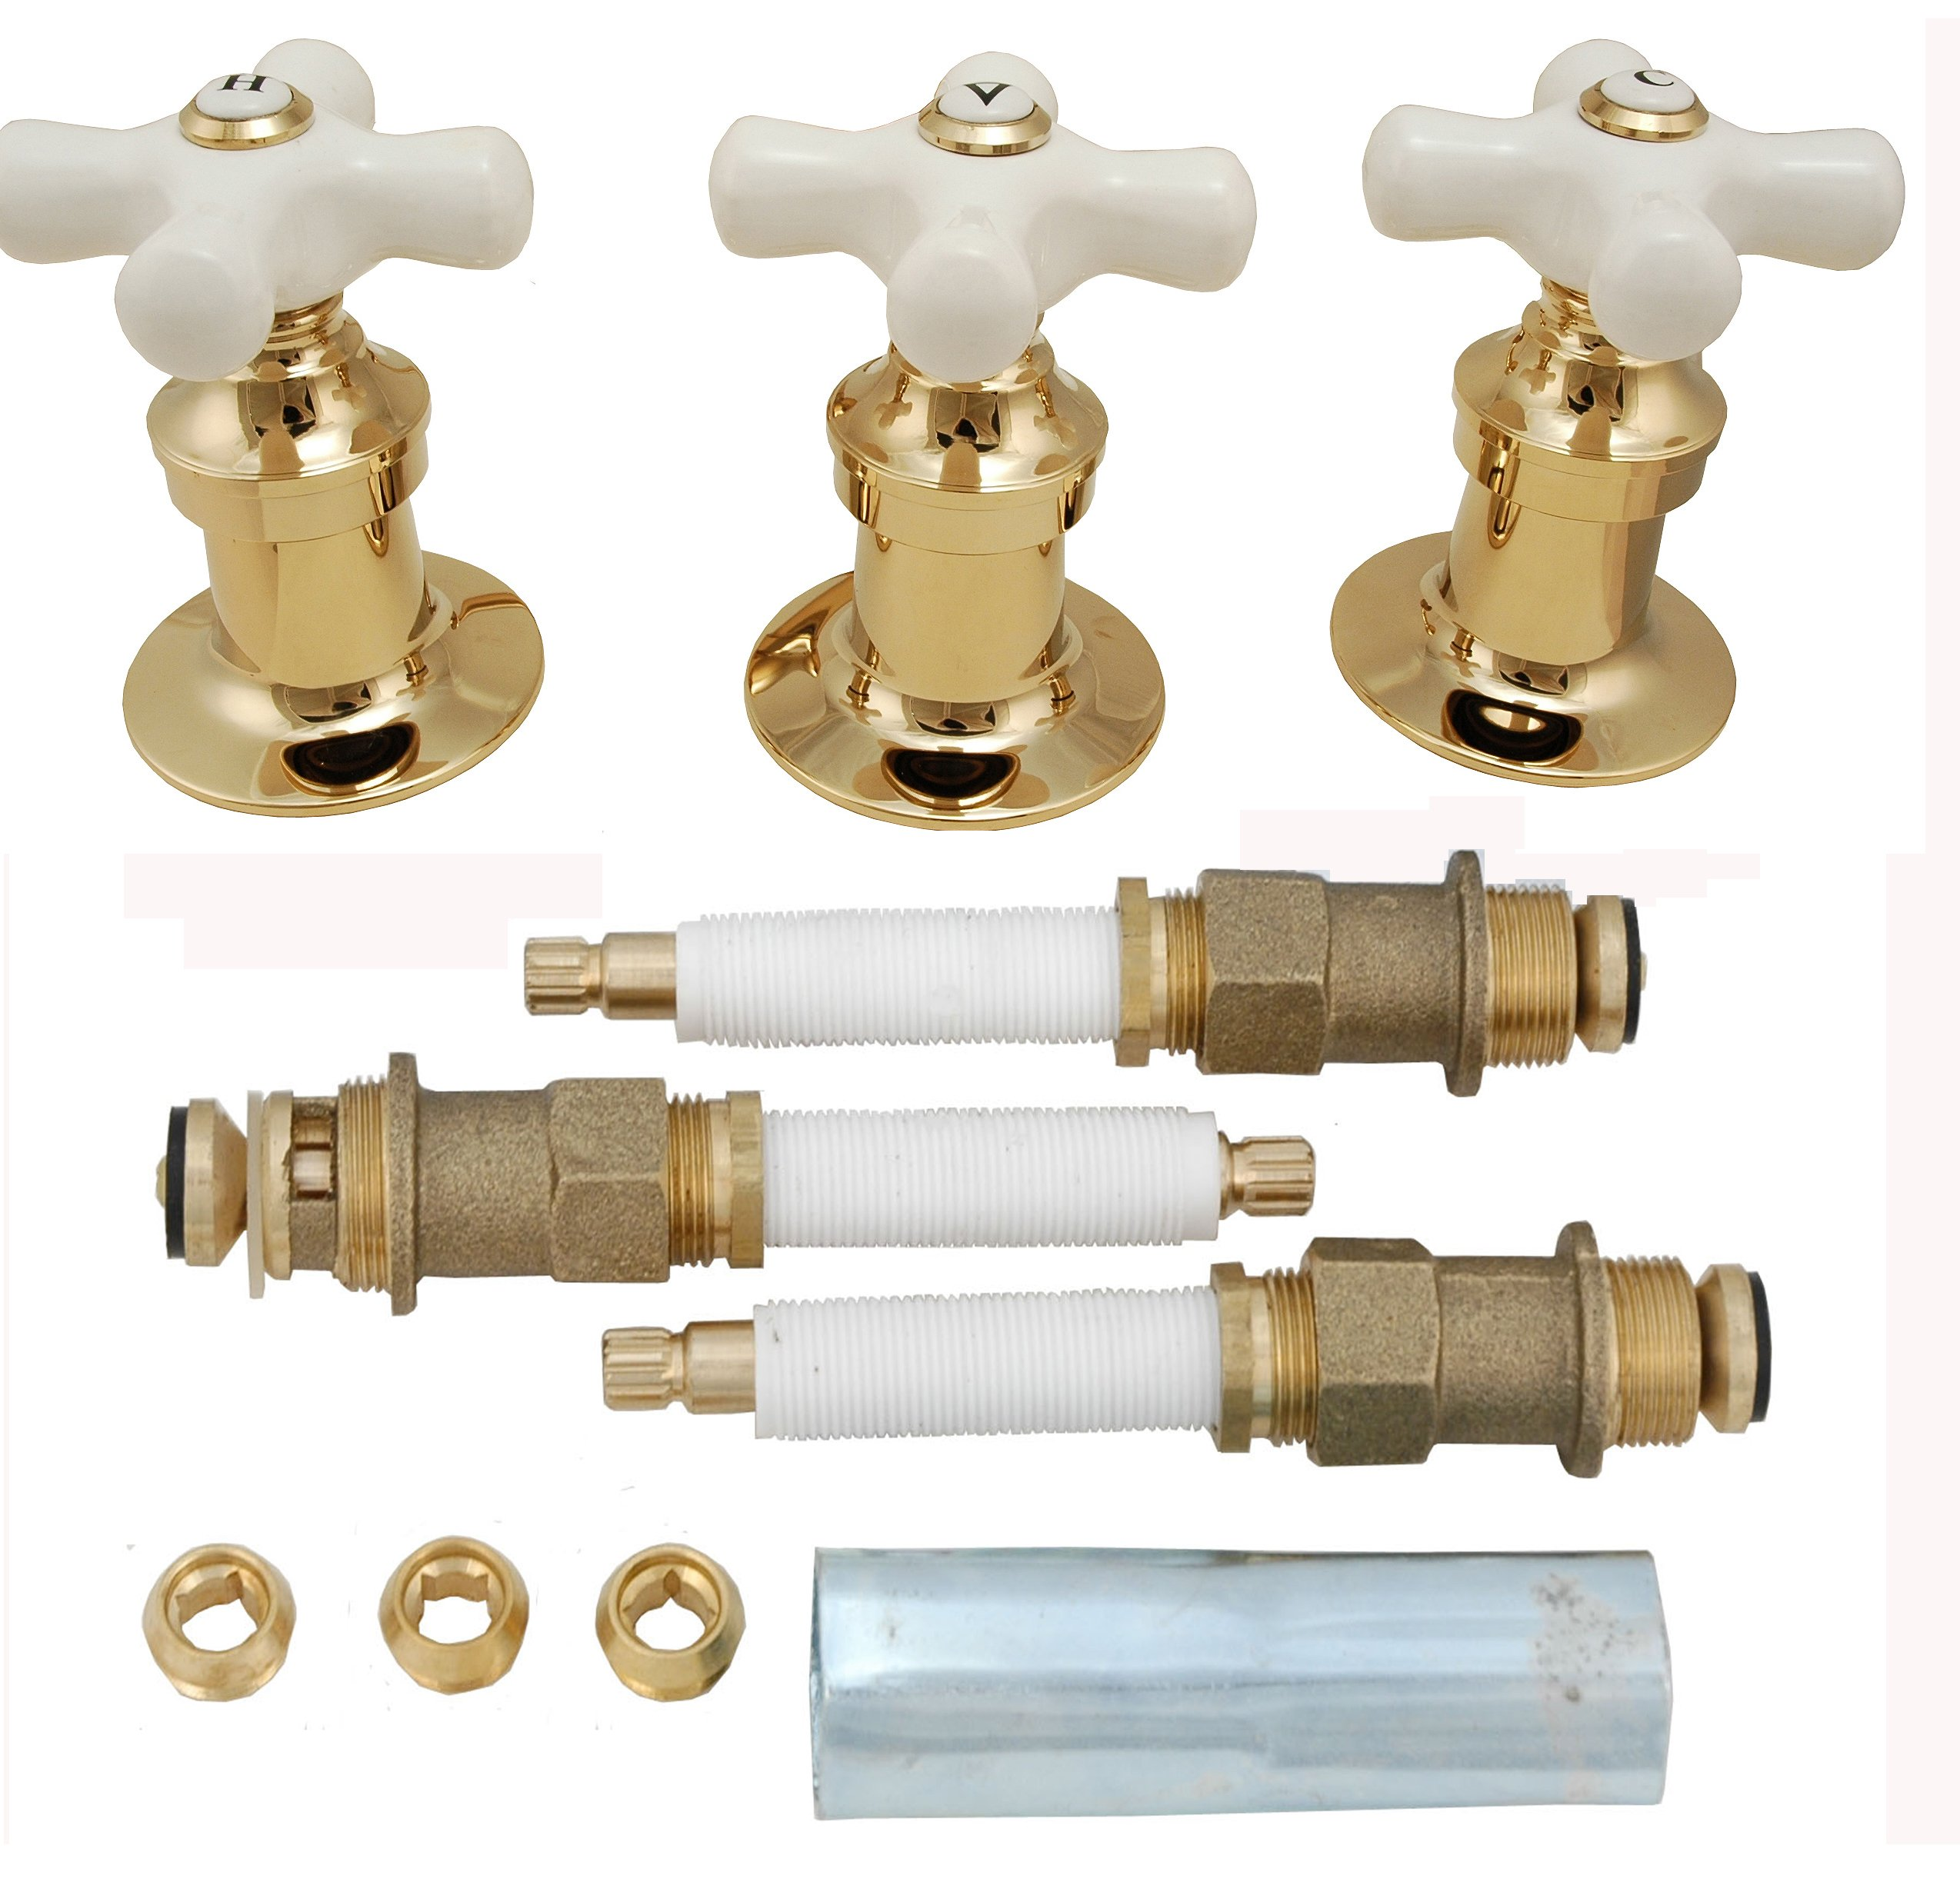 Re-modeling Kit, Fit Price Pfister Shower, with Porcelain Cross Handles, Polish Brass Finish - By Plumb USA